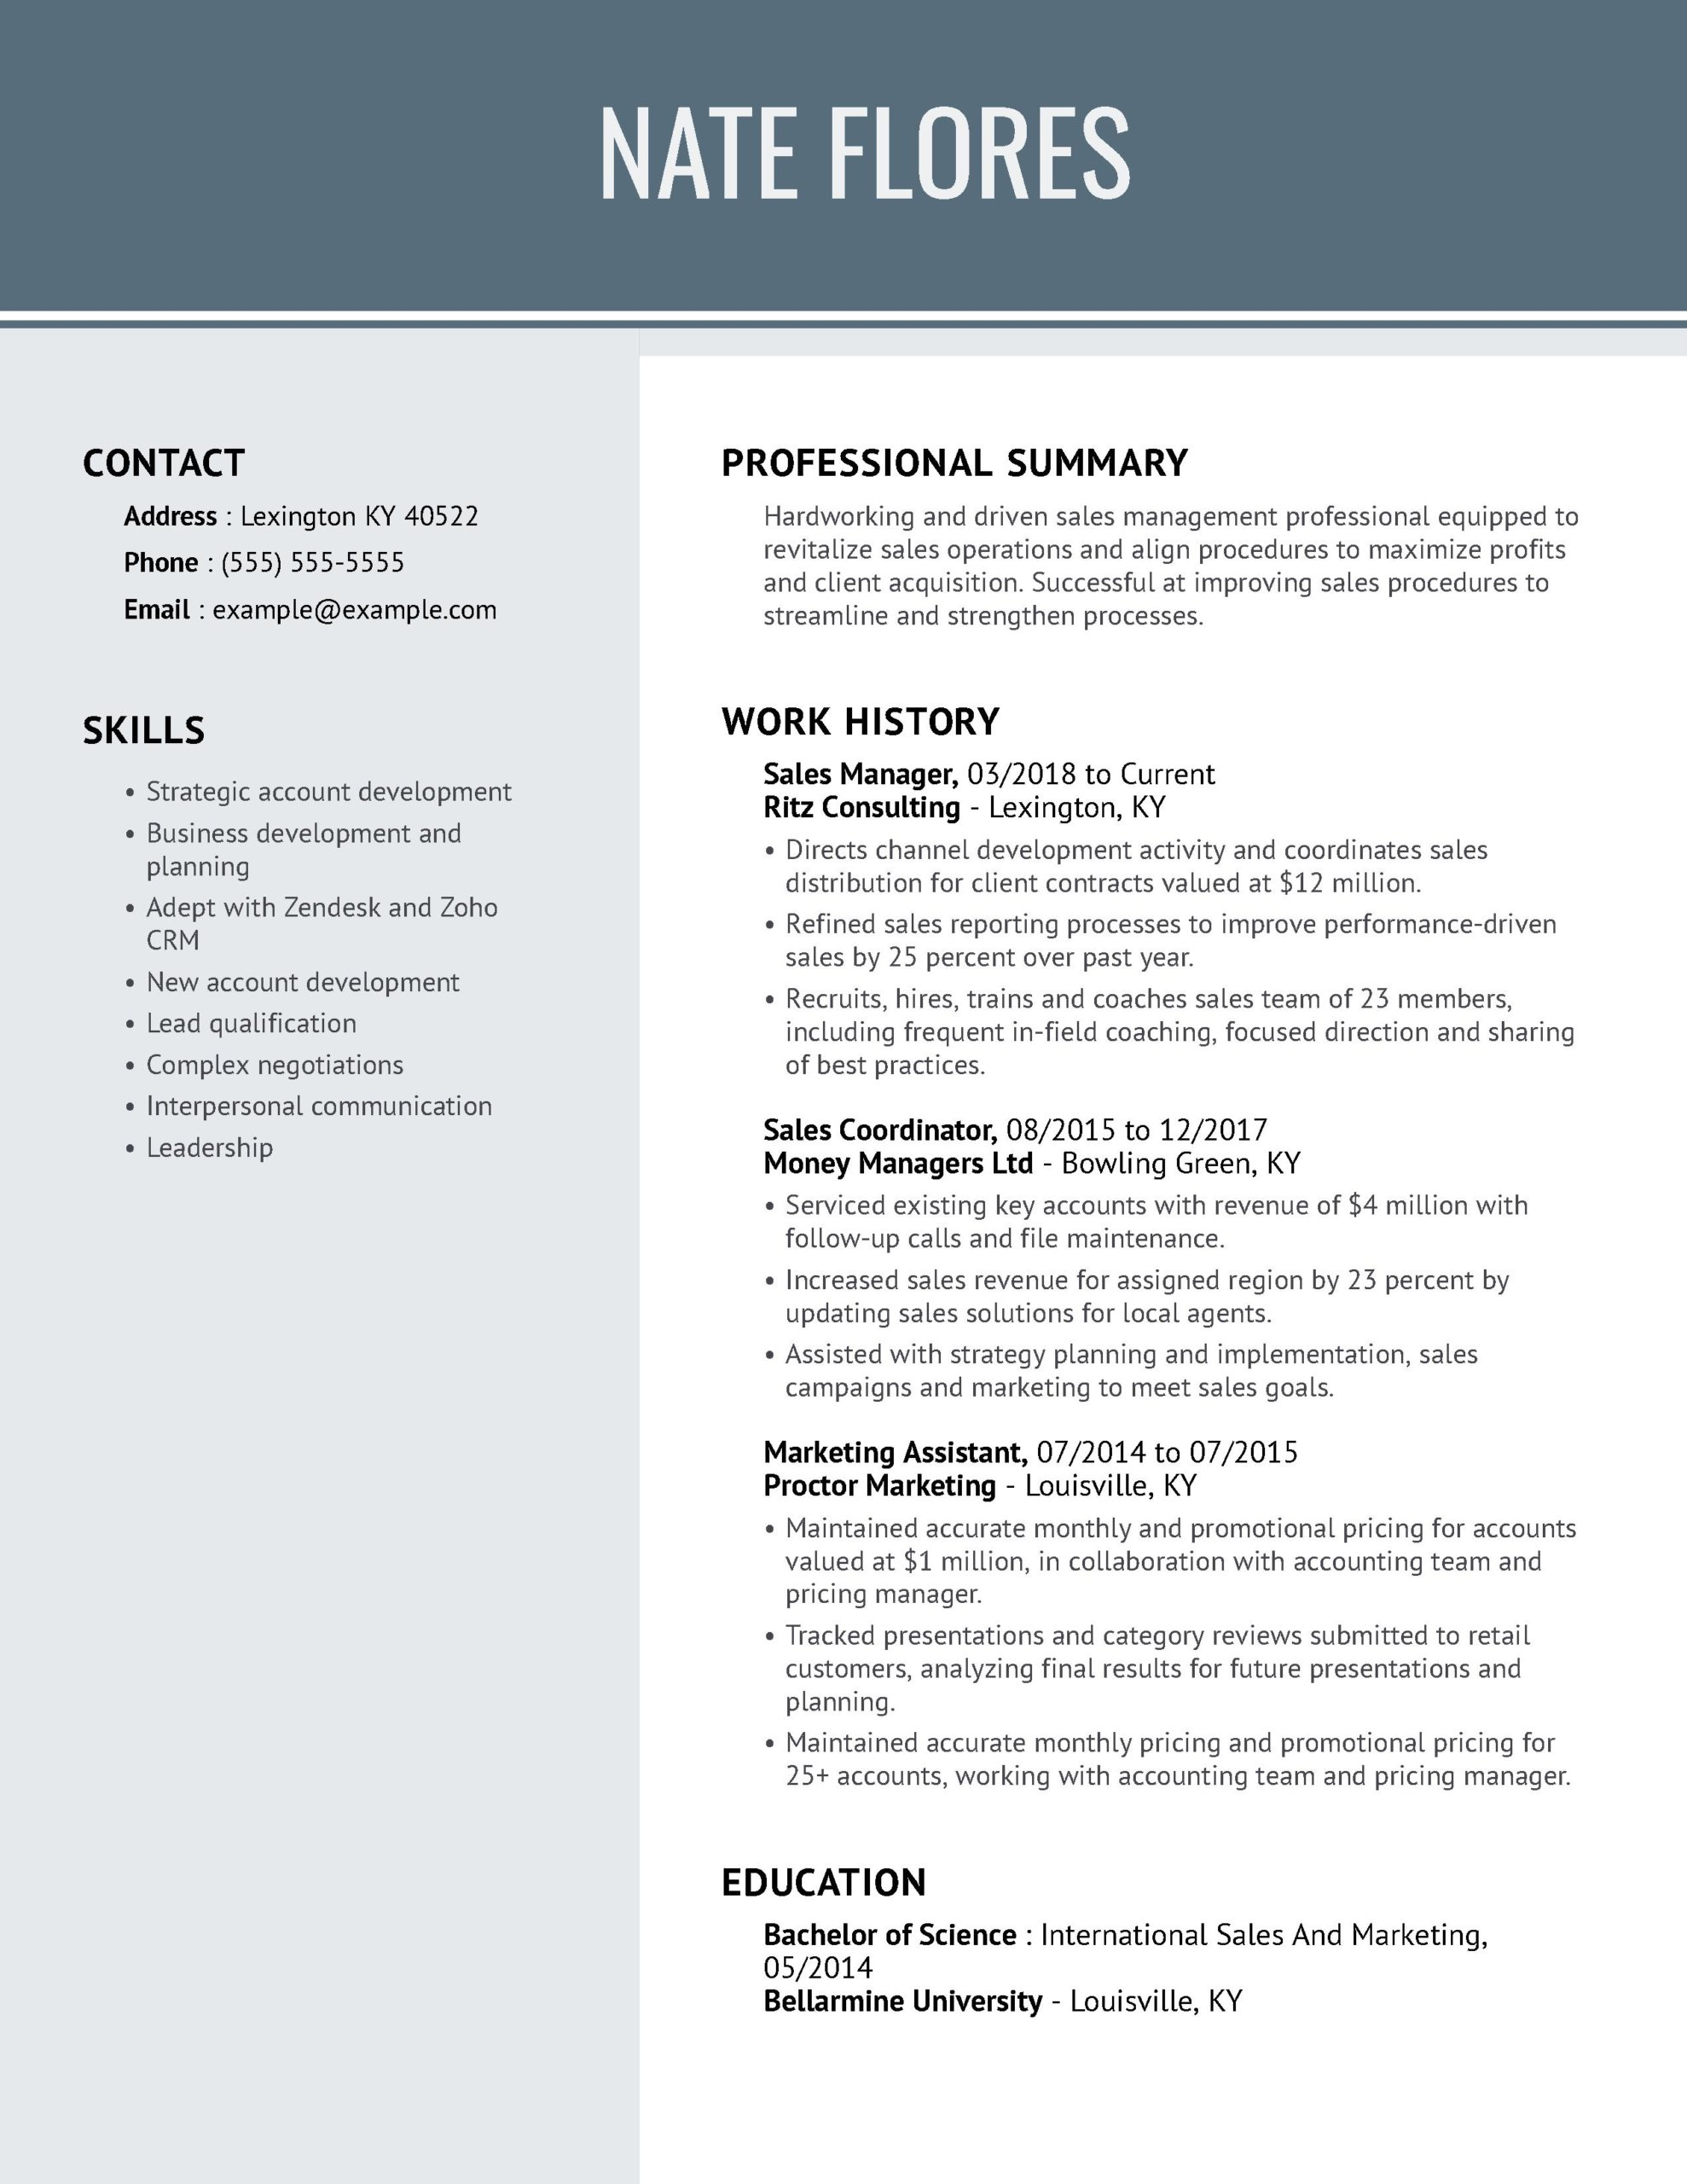 professional resume examples myperfectresume builder for jobs manager cool combod scaled Resume Resume Builder For Sales Jobs